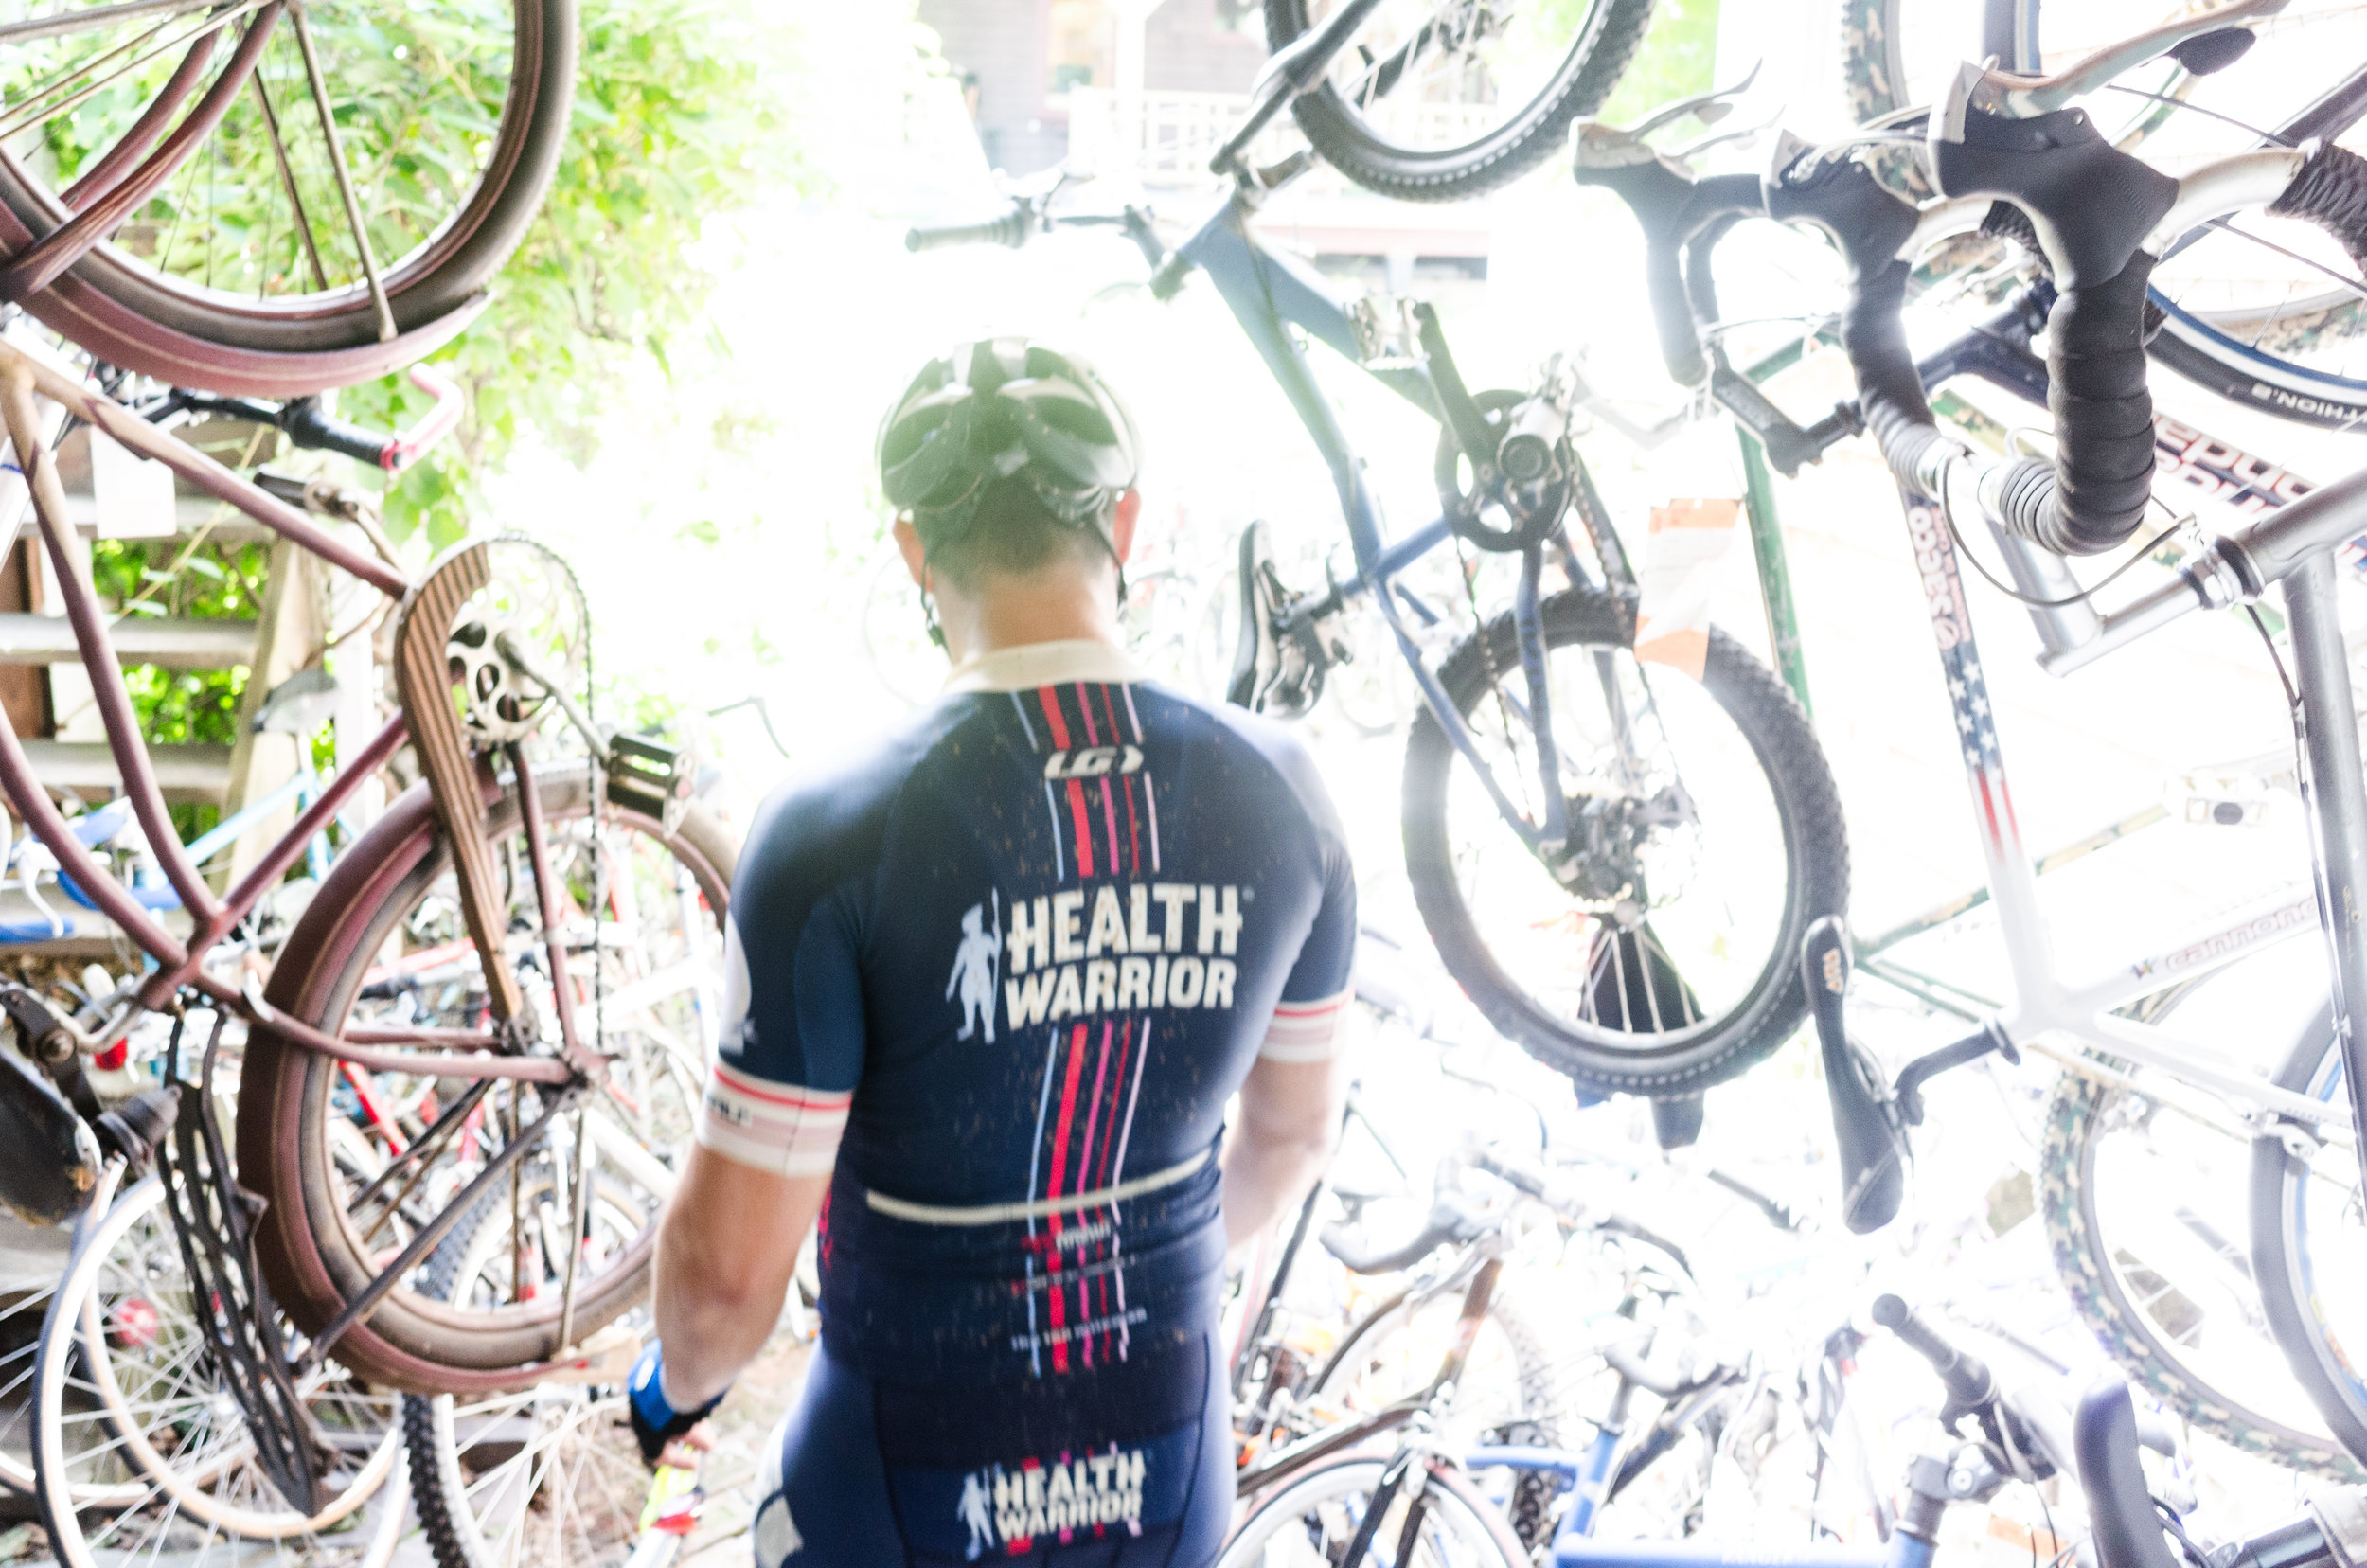 Unfortunately Simon was plagued with mechanical issues throughout the day - requiring a bike shop pitstop along the way.